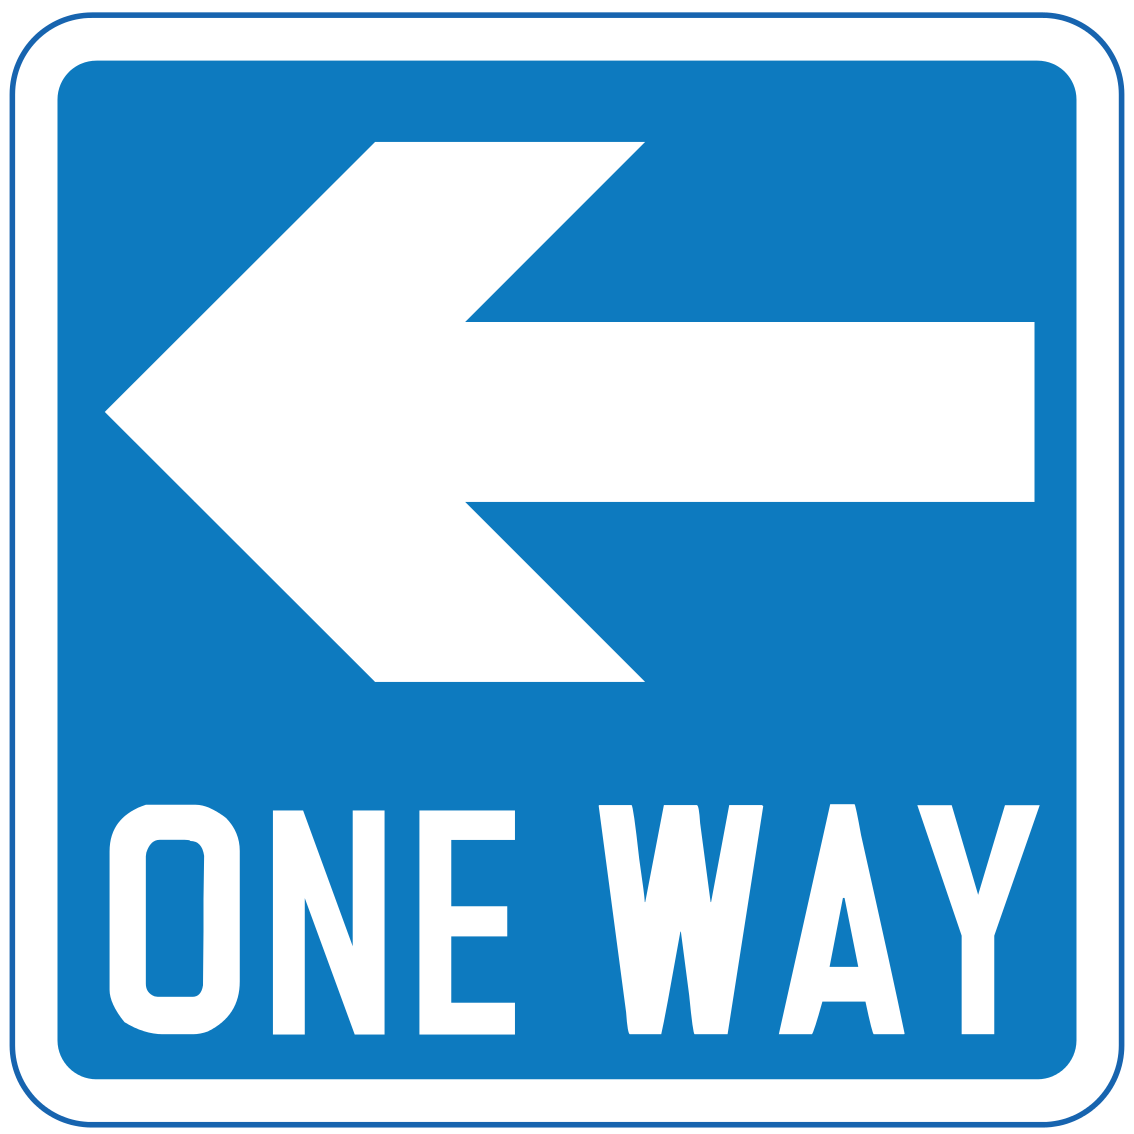 One-way traffic in direction indicated (left)